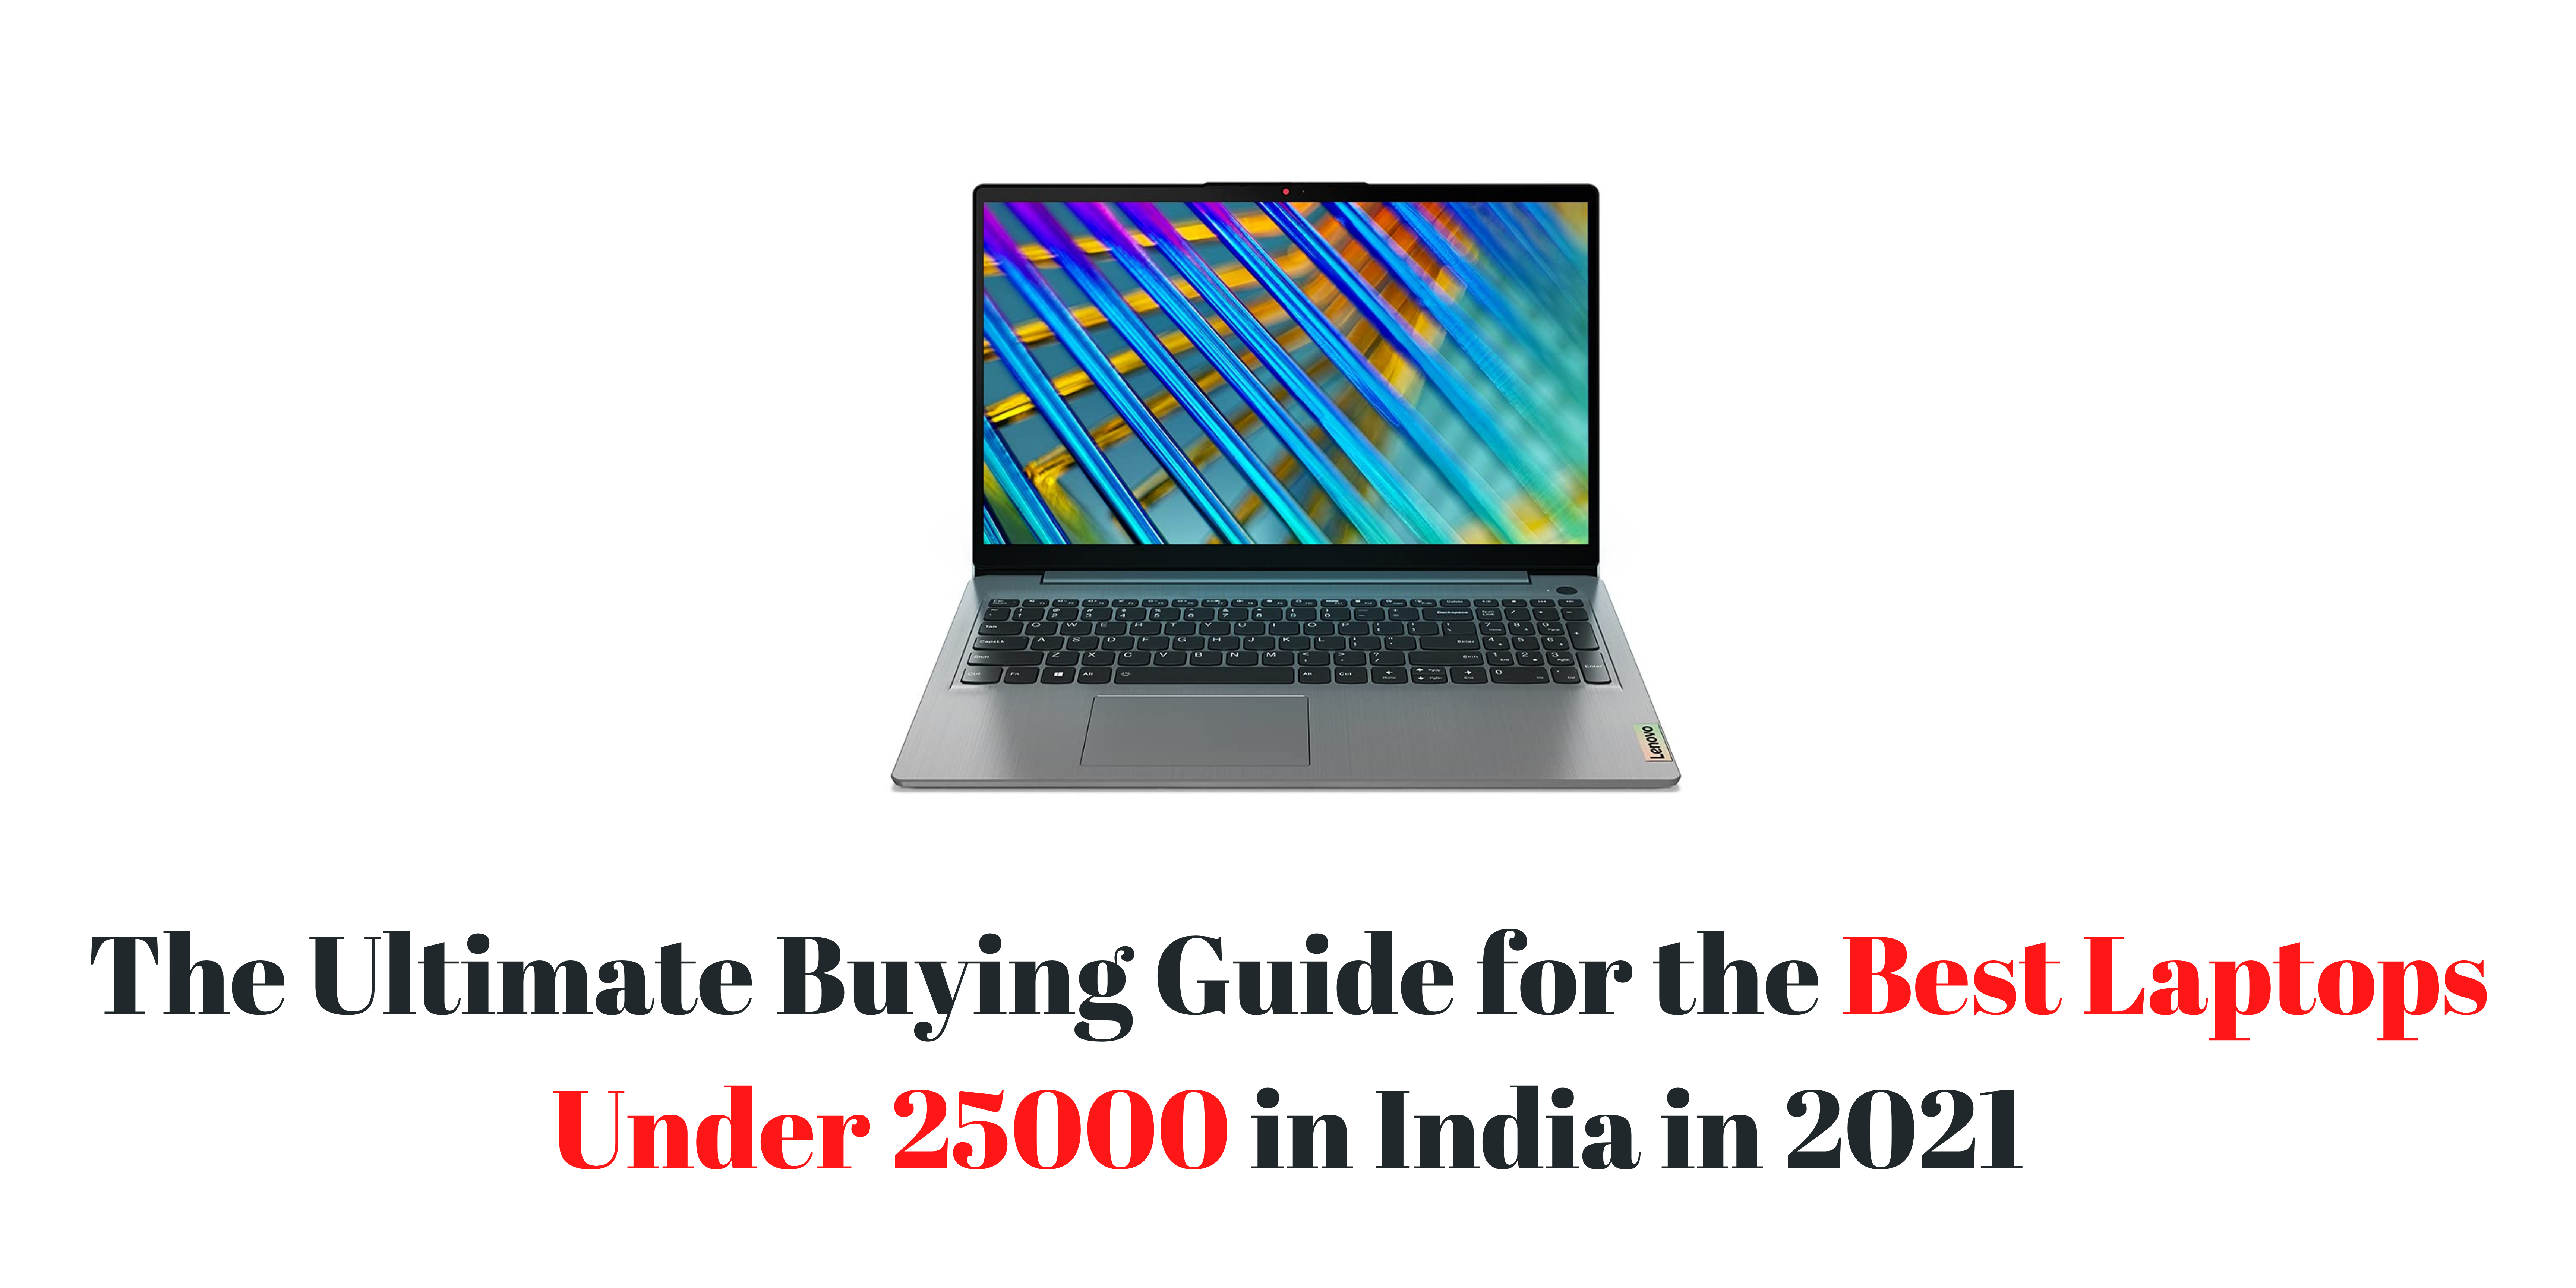 The Ultimate Buying Guide for the Best Laptops Under 25000 in India in 2021